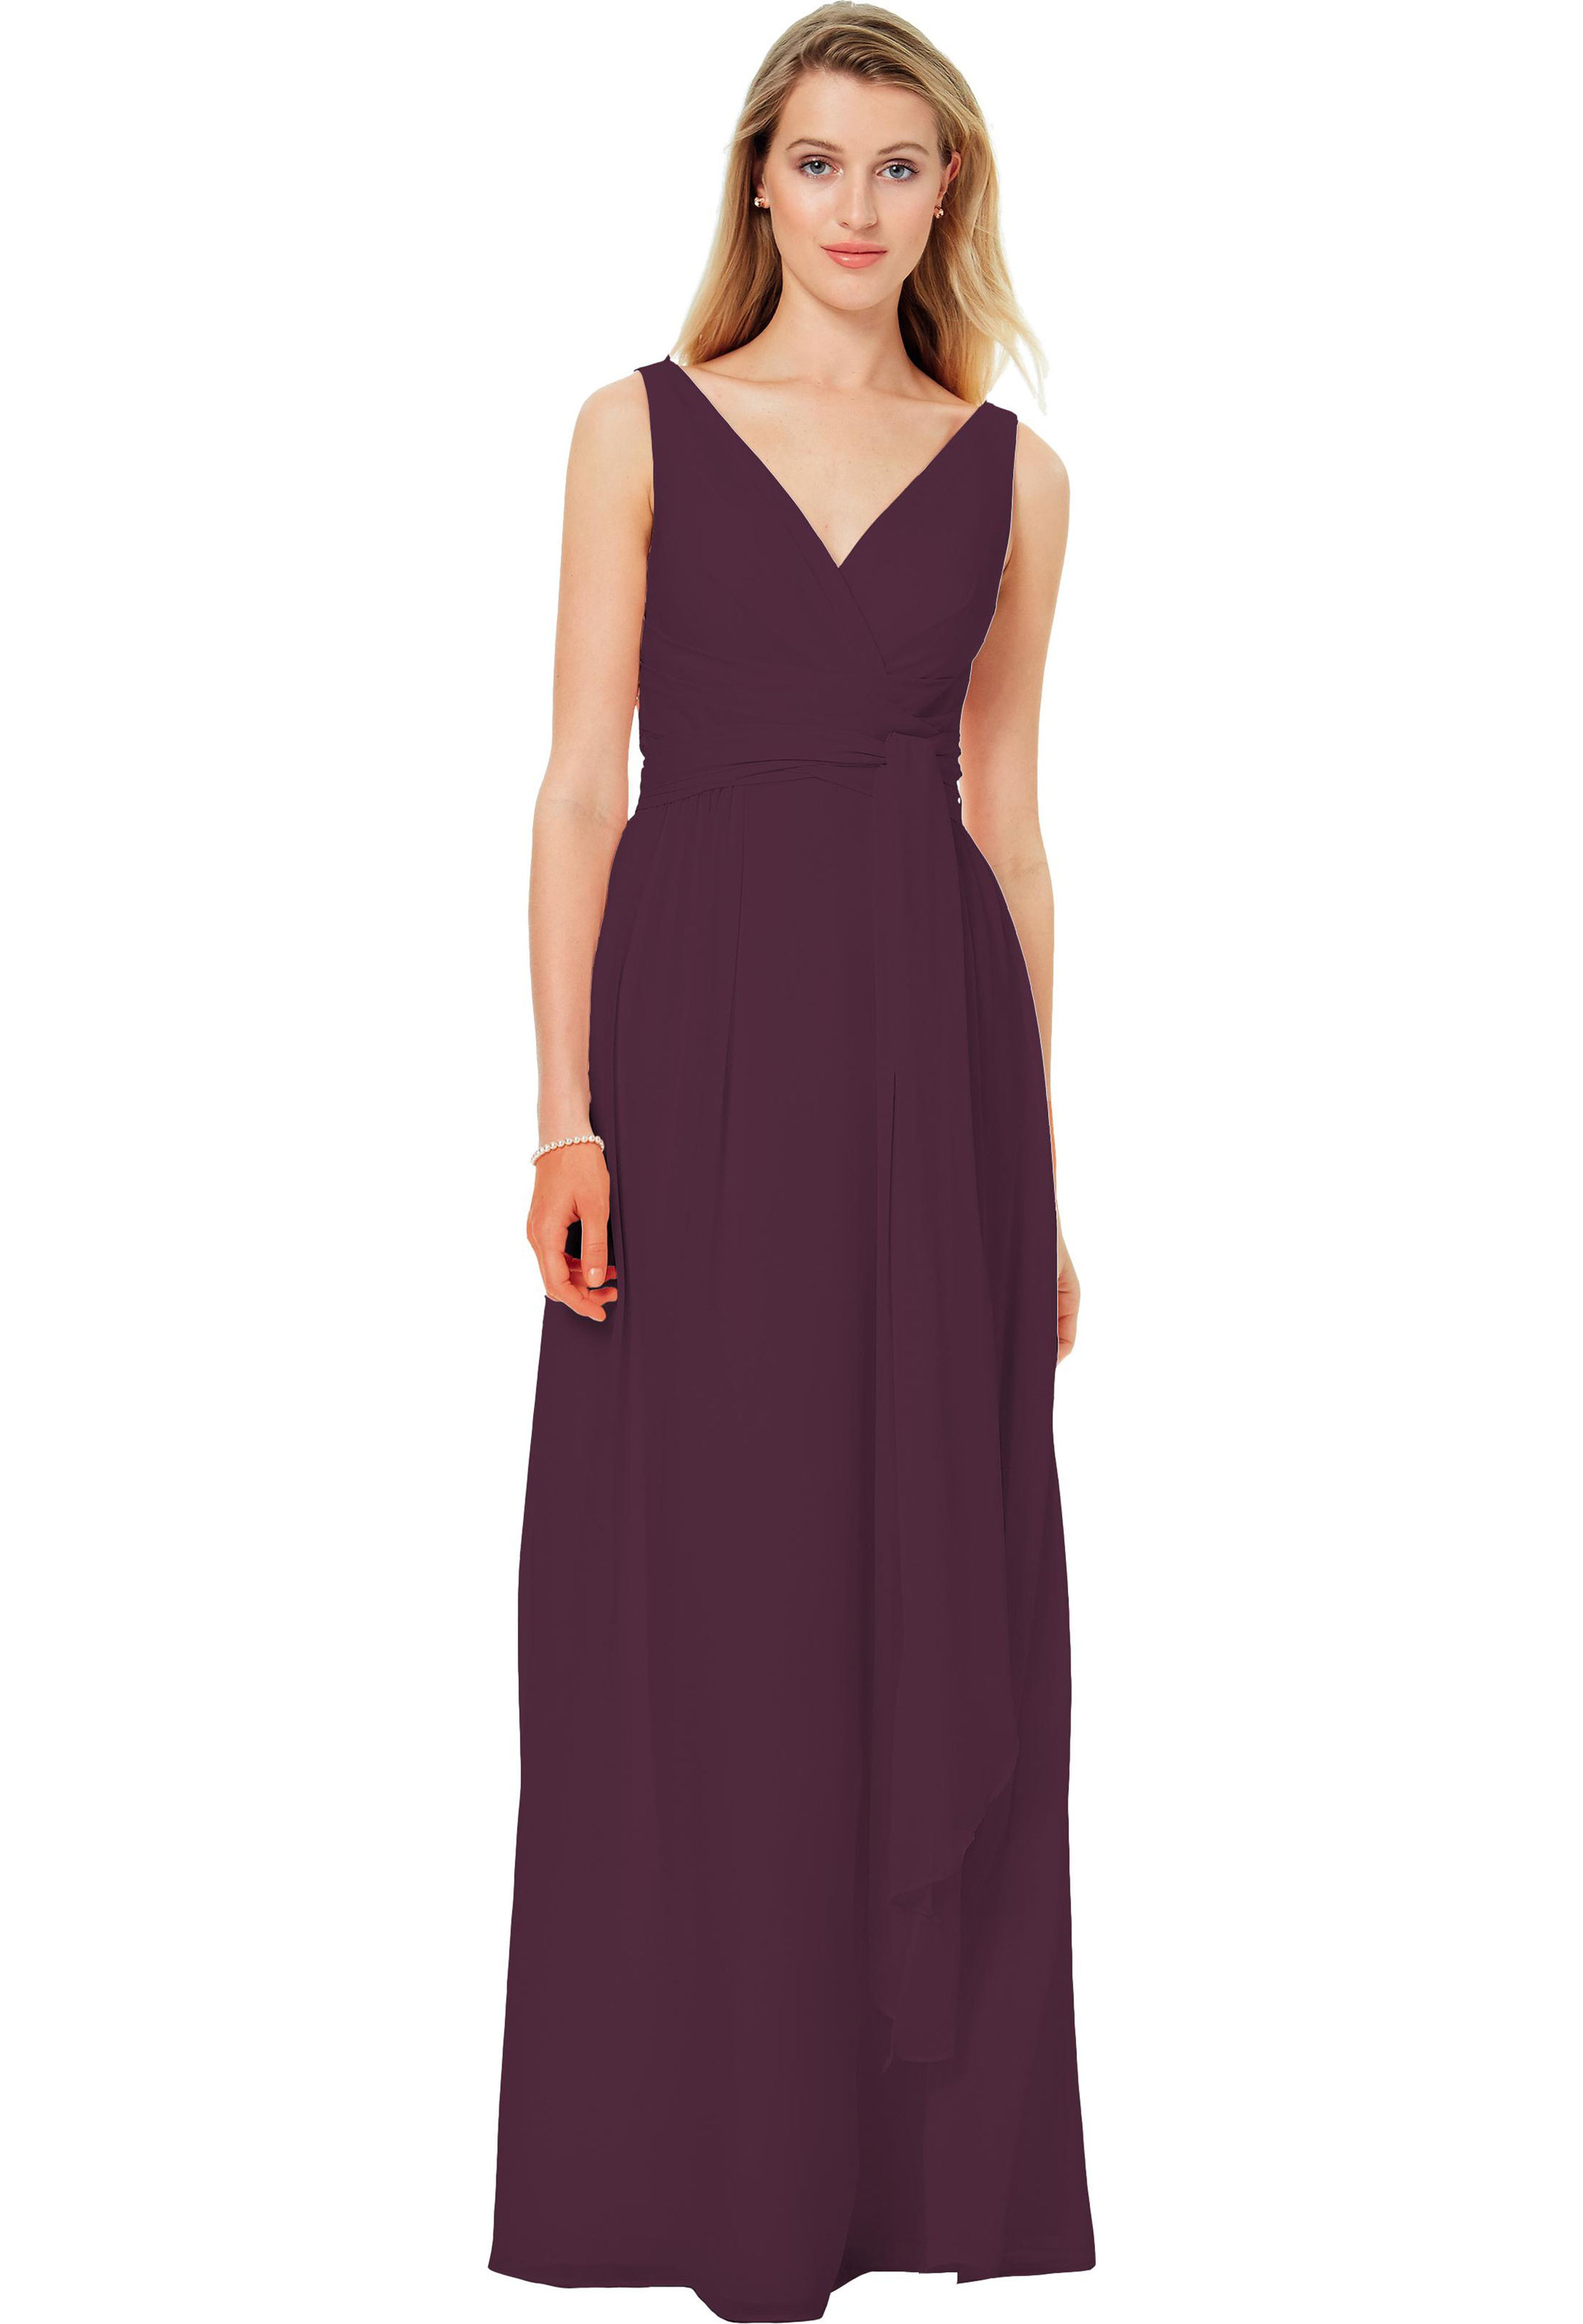 Bill Levkoff EGGPLANT Chiffon Sleeveless A-line gown, $220.00 Front